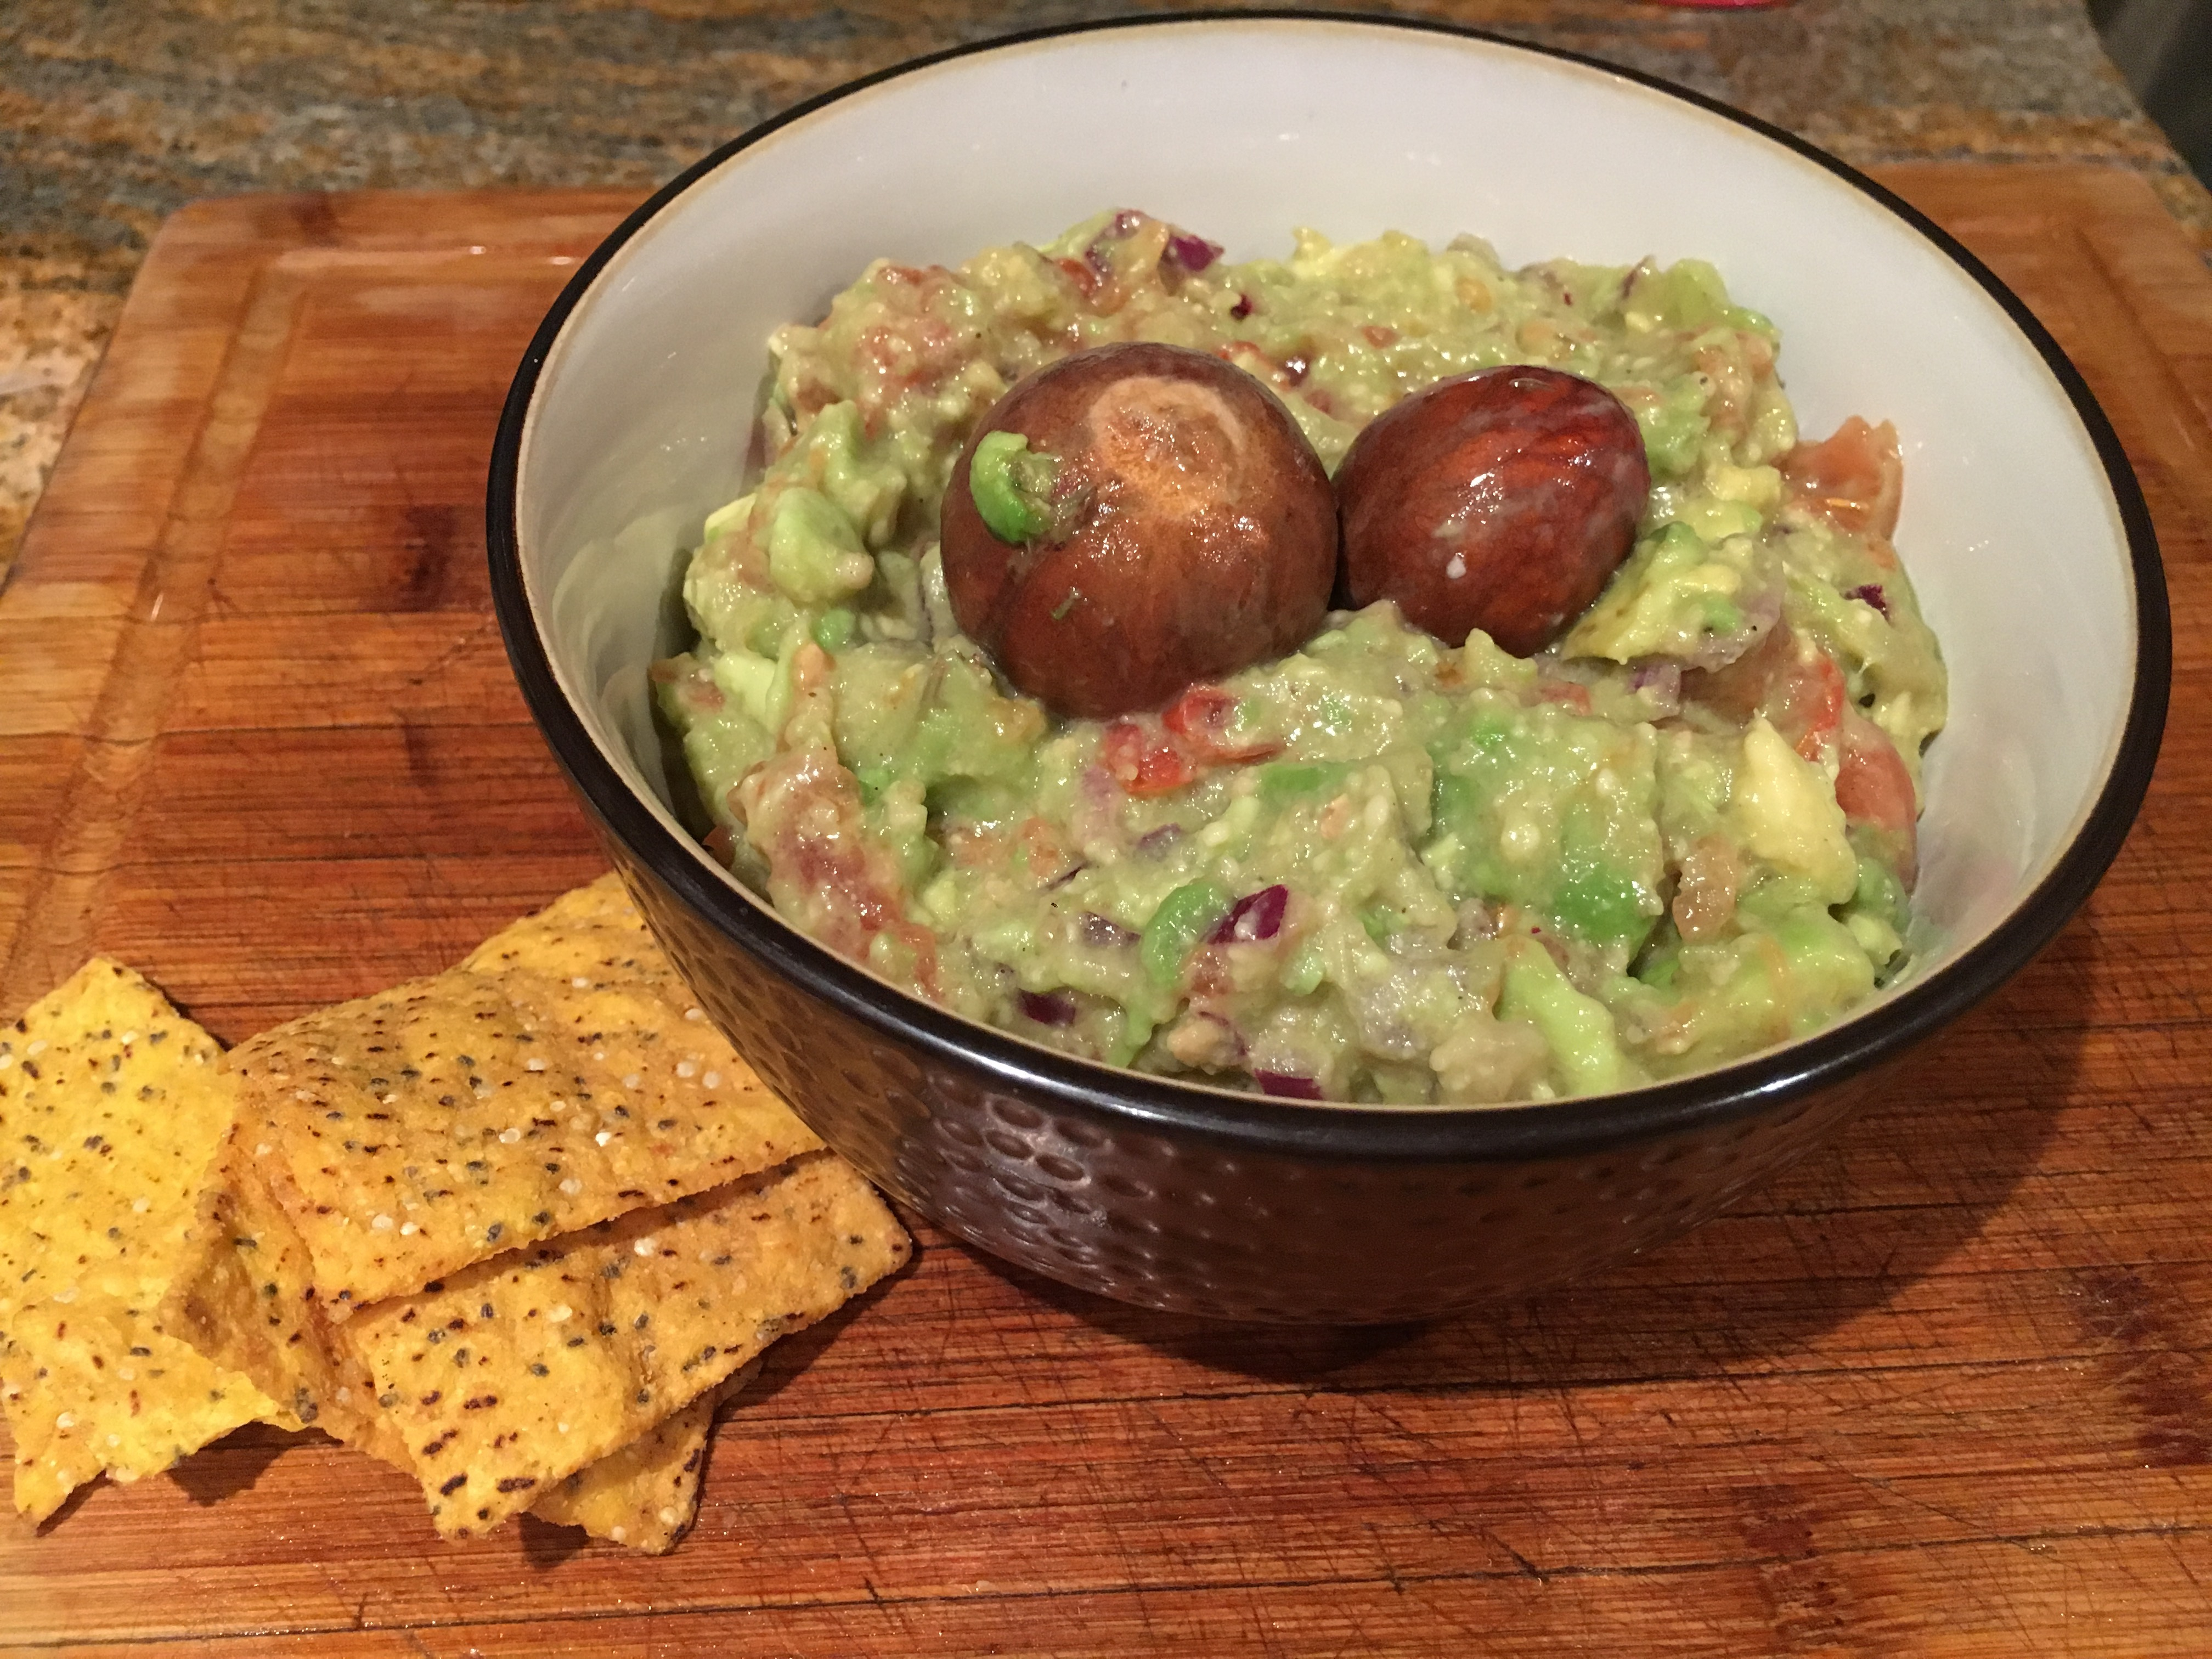 taco night rebooted with guacamole